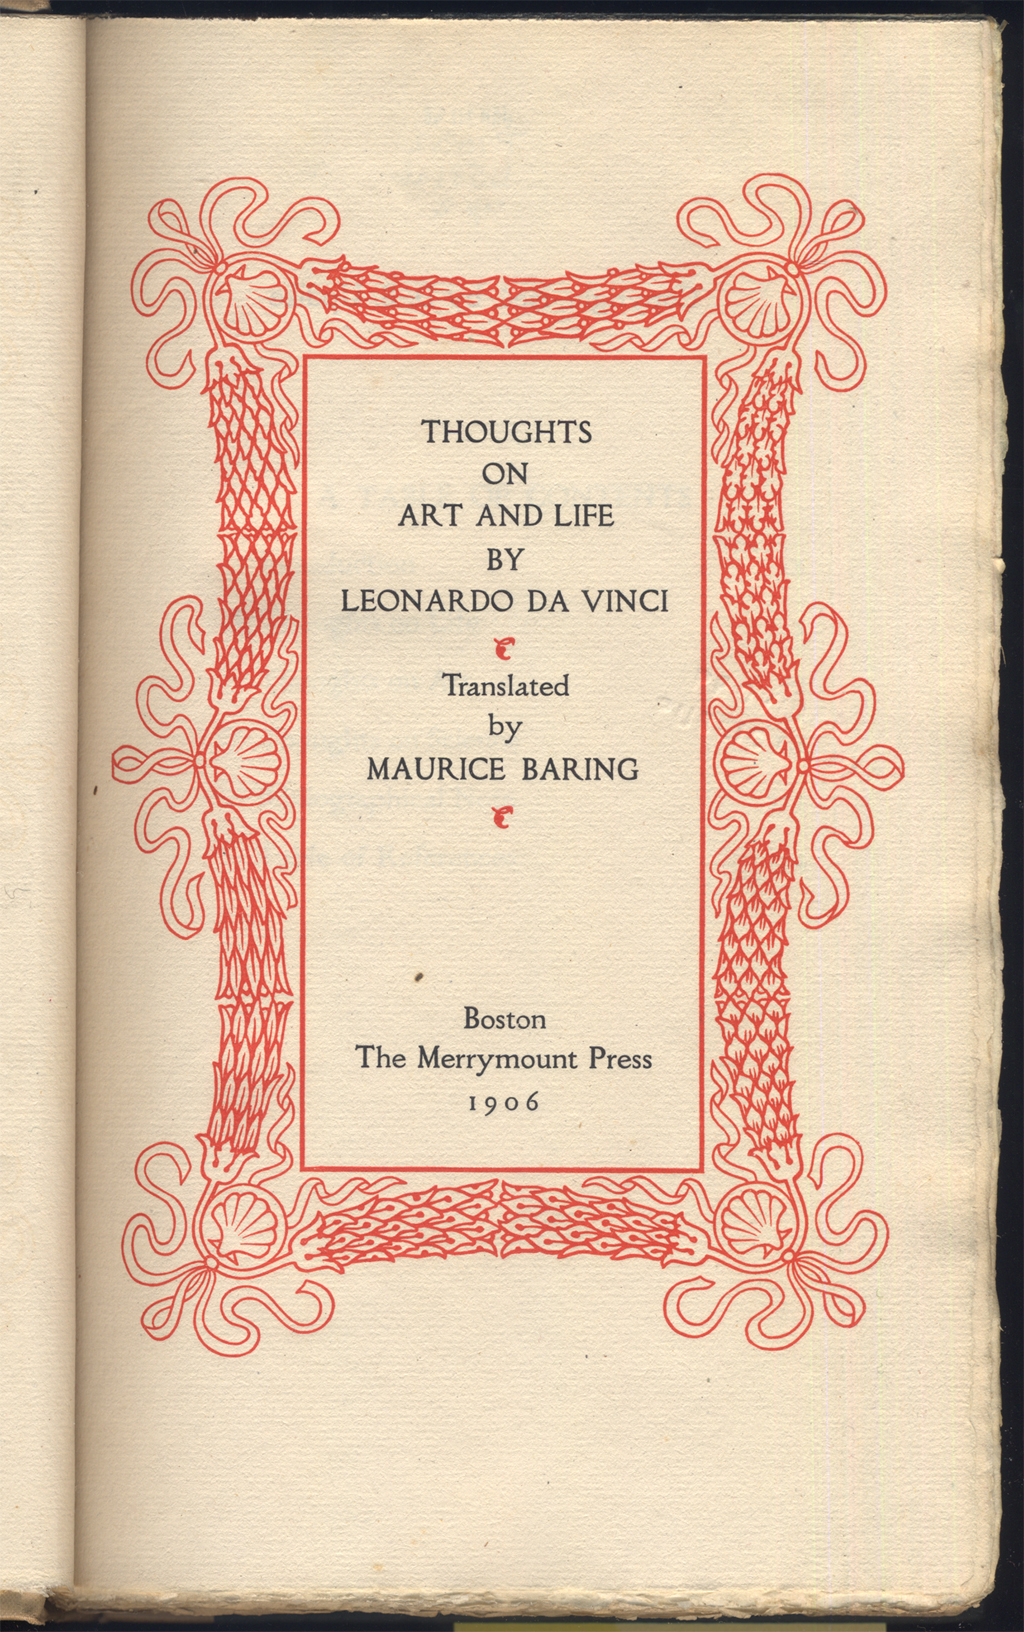 Title page for Thoughts on Art & Life by Leonardo da Vinci (Boston: The Merrymount Press, 1906). Frame design by T.M. Cleland.